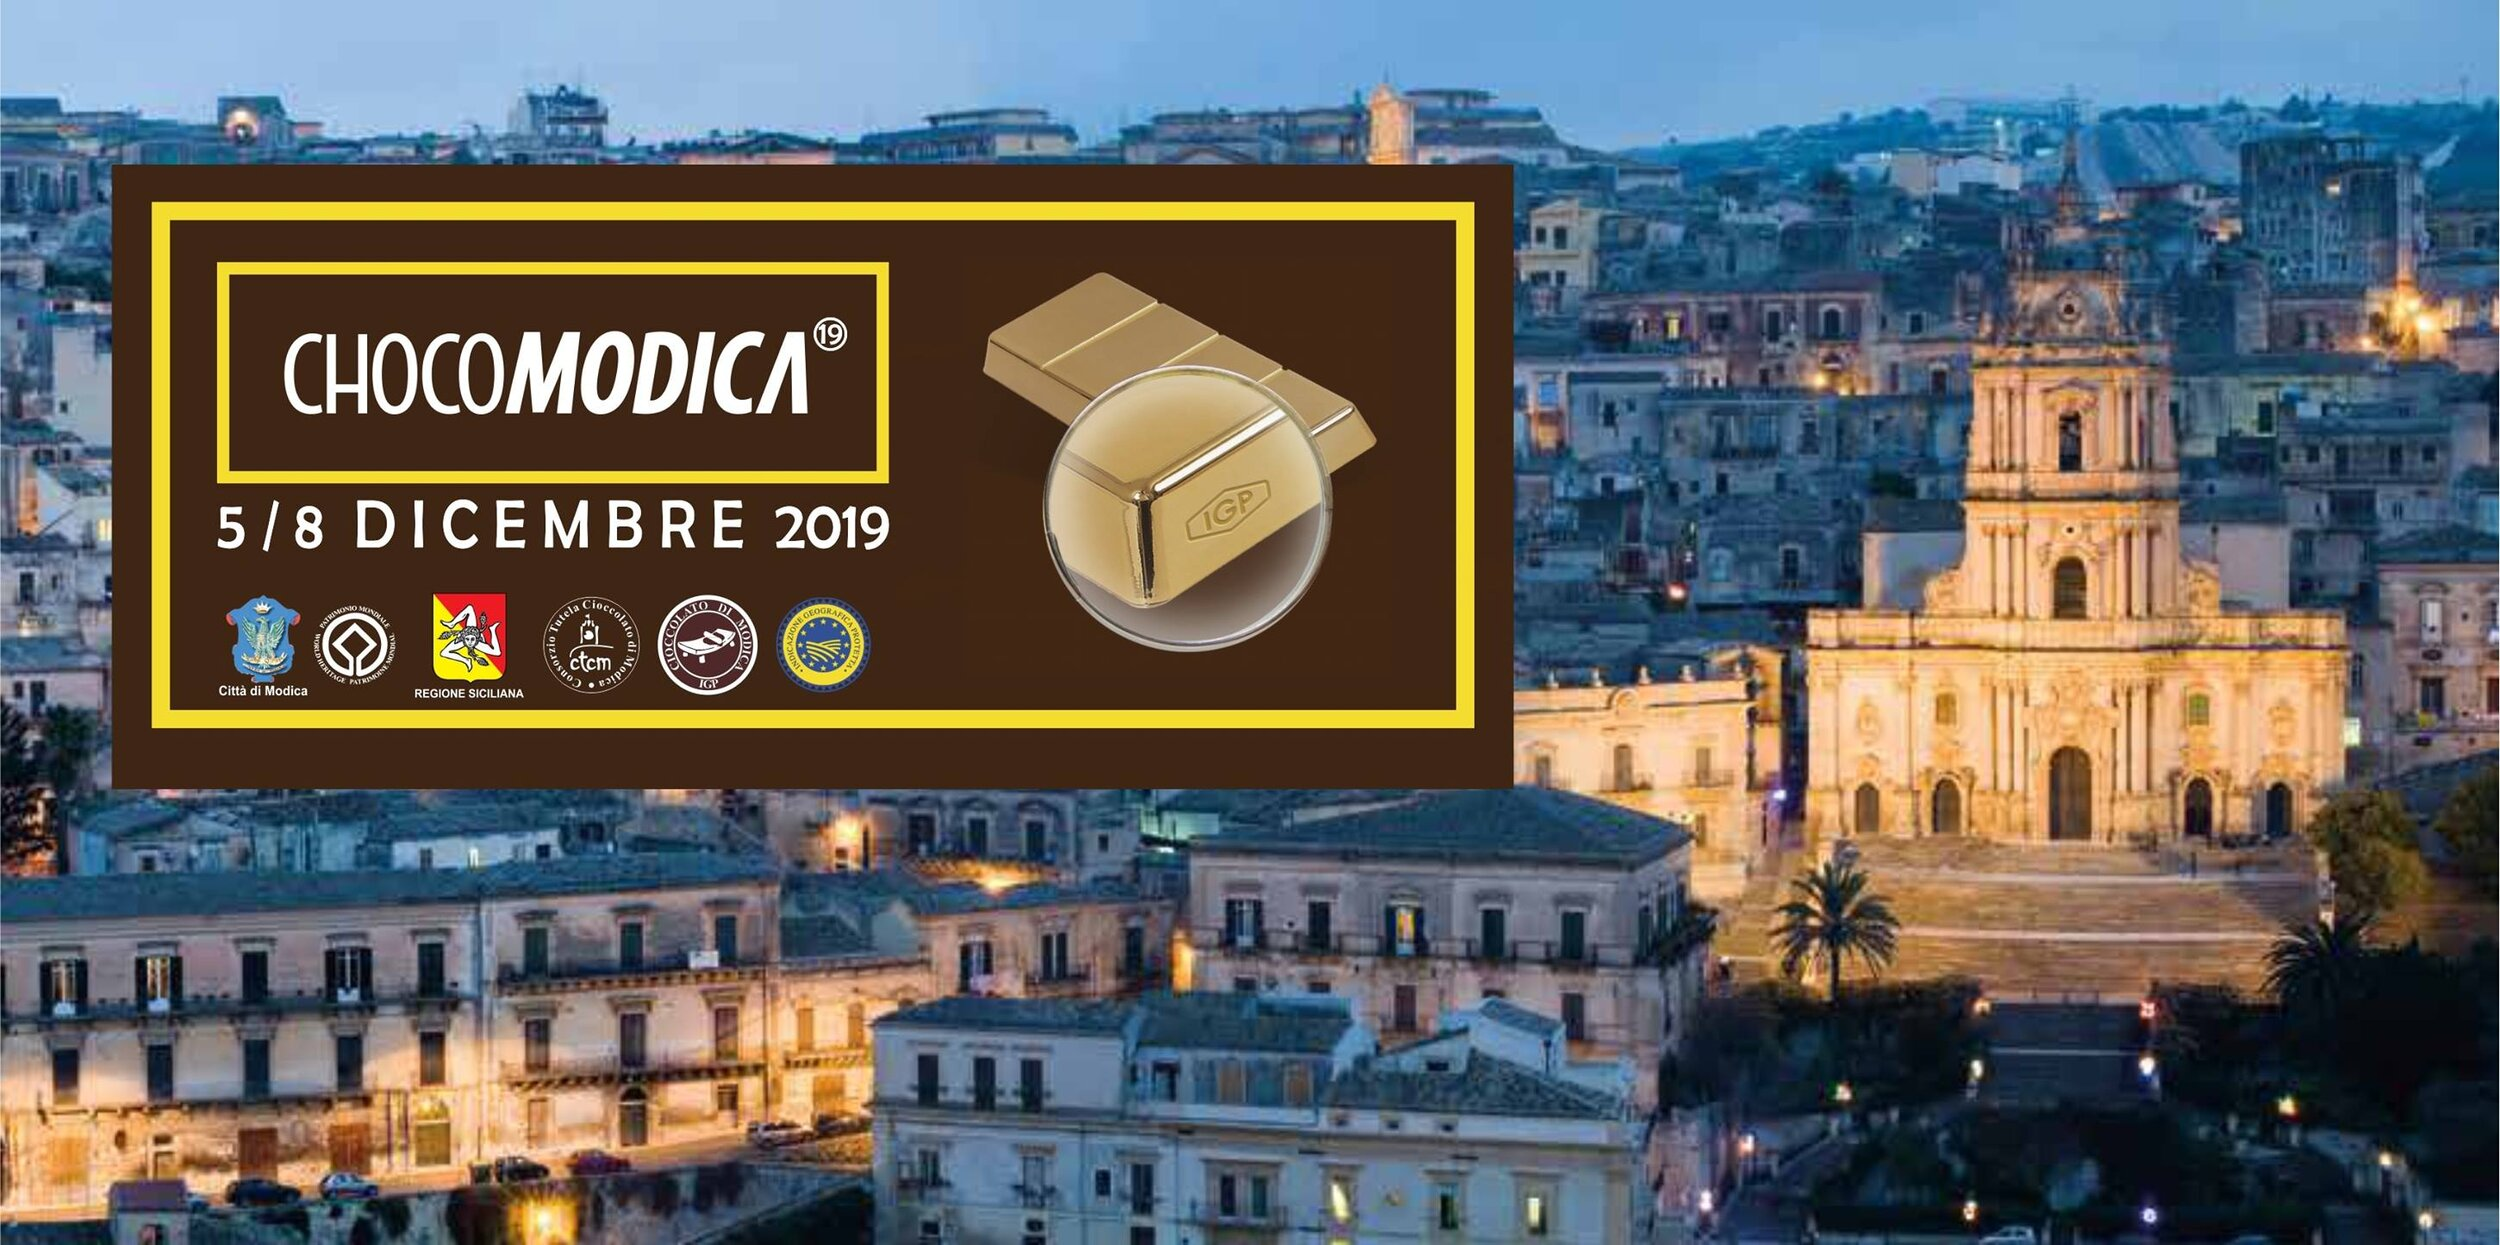 chocomodica-2019-a-modica-1579707532.jpg